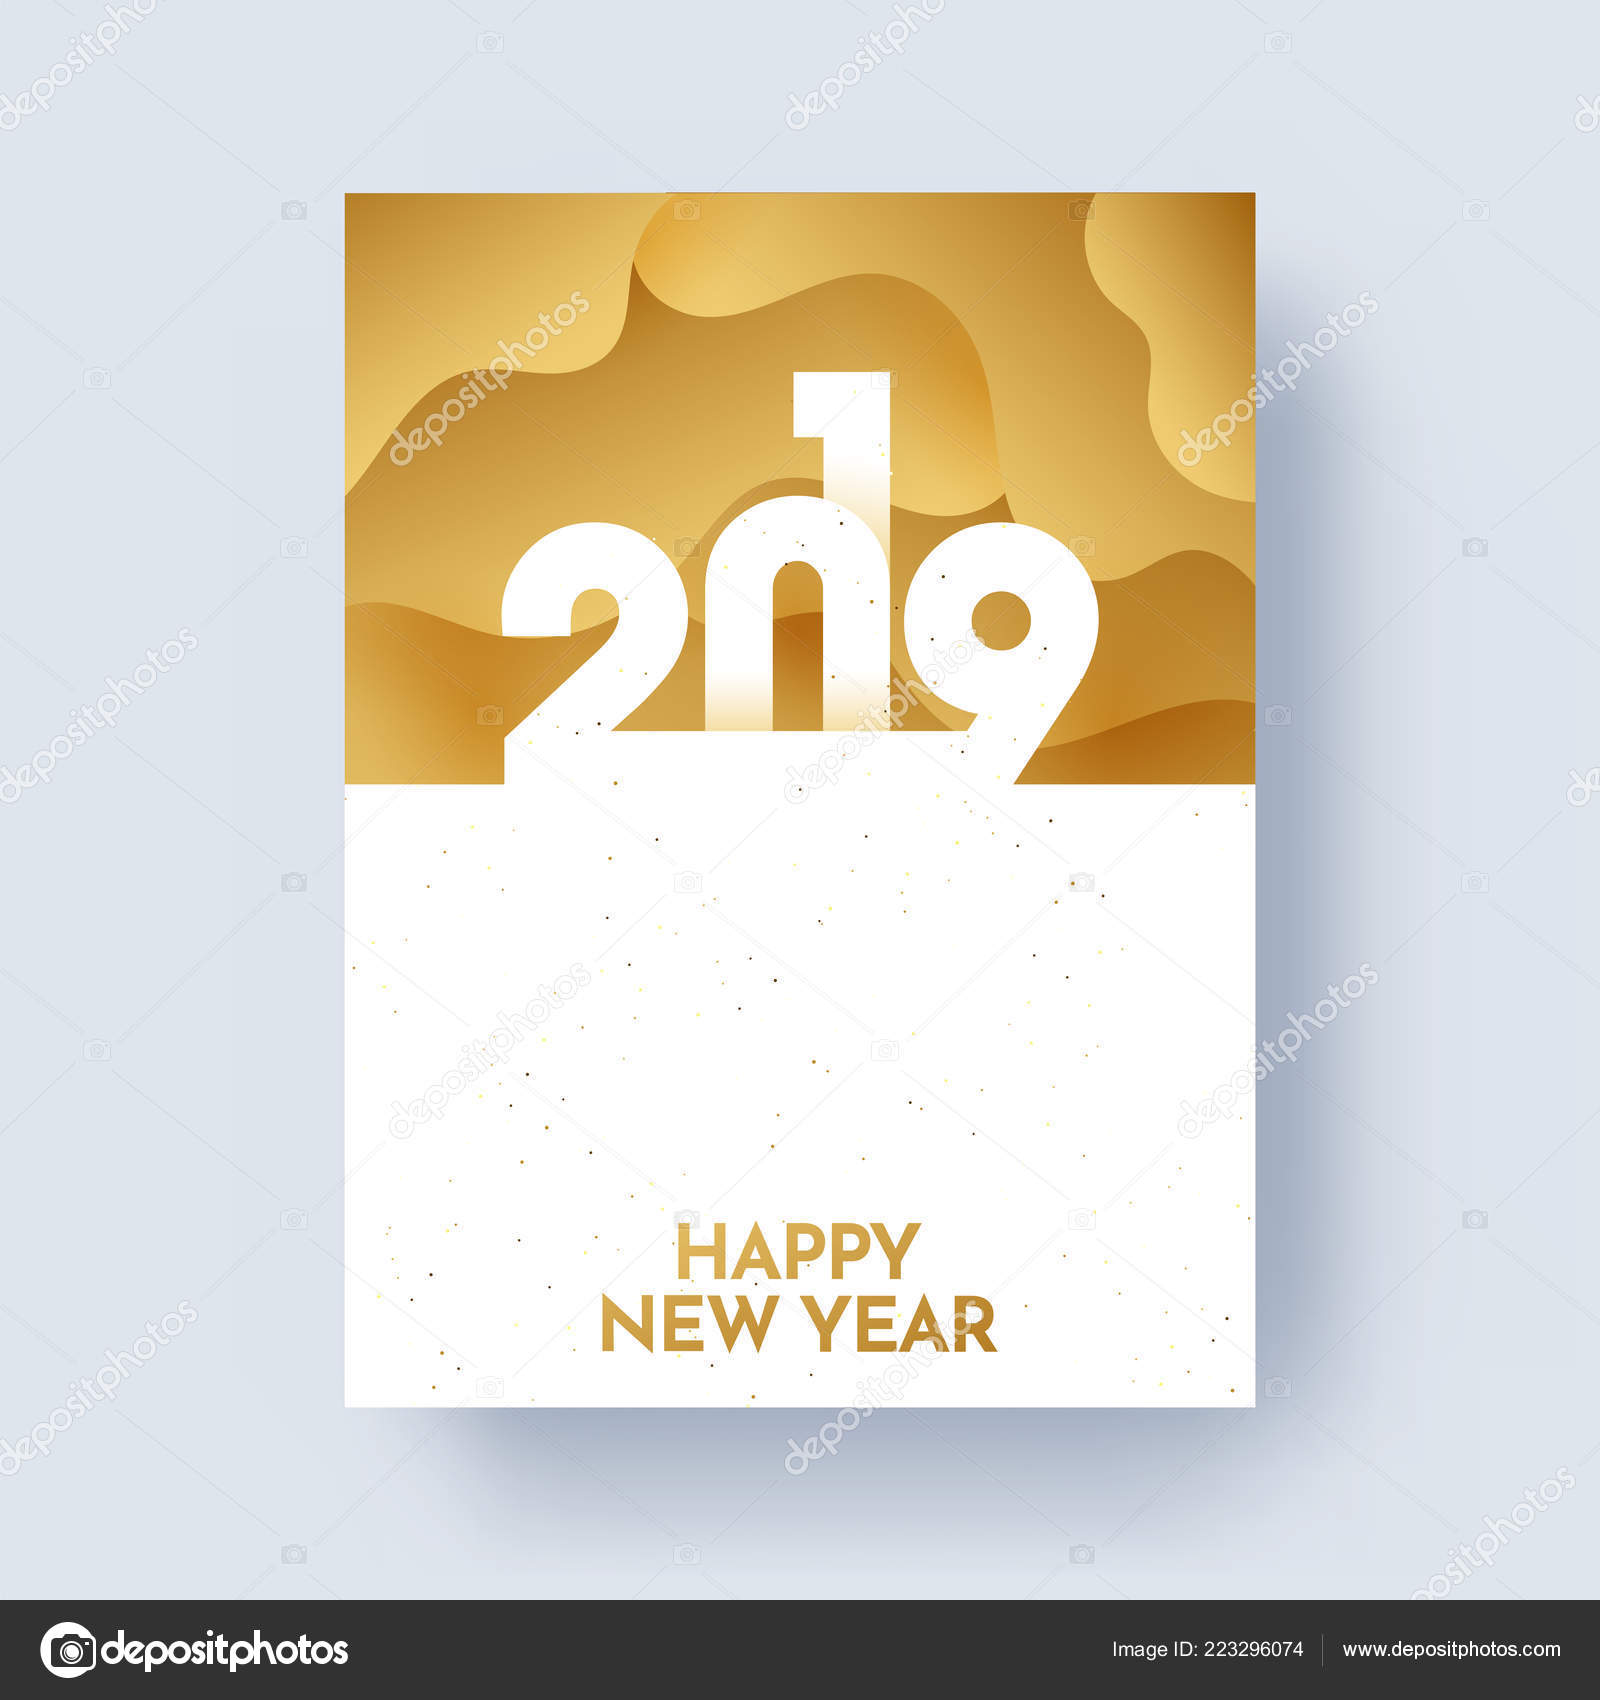 2019 Happy New Year Greeting Card Design Space Your Message Stock